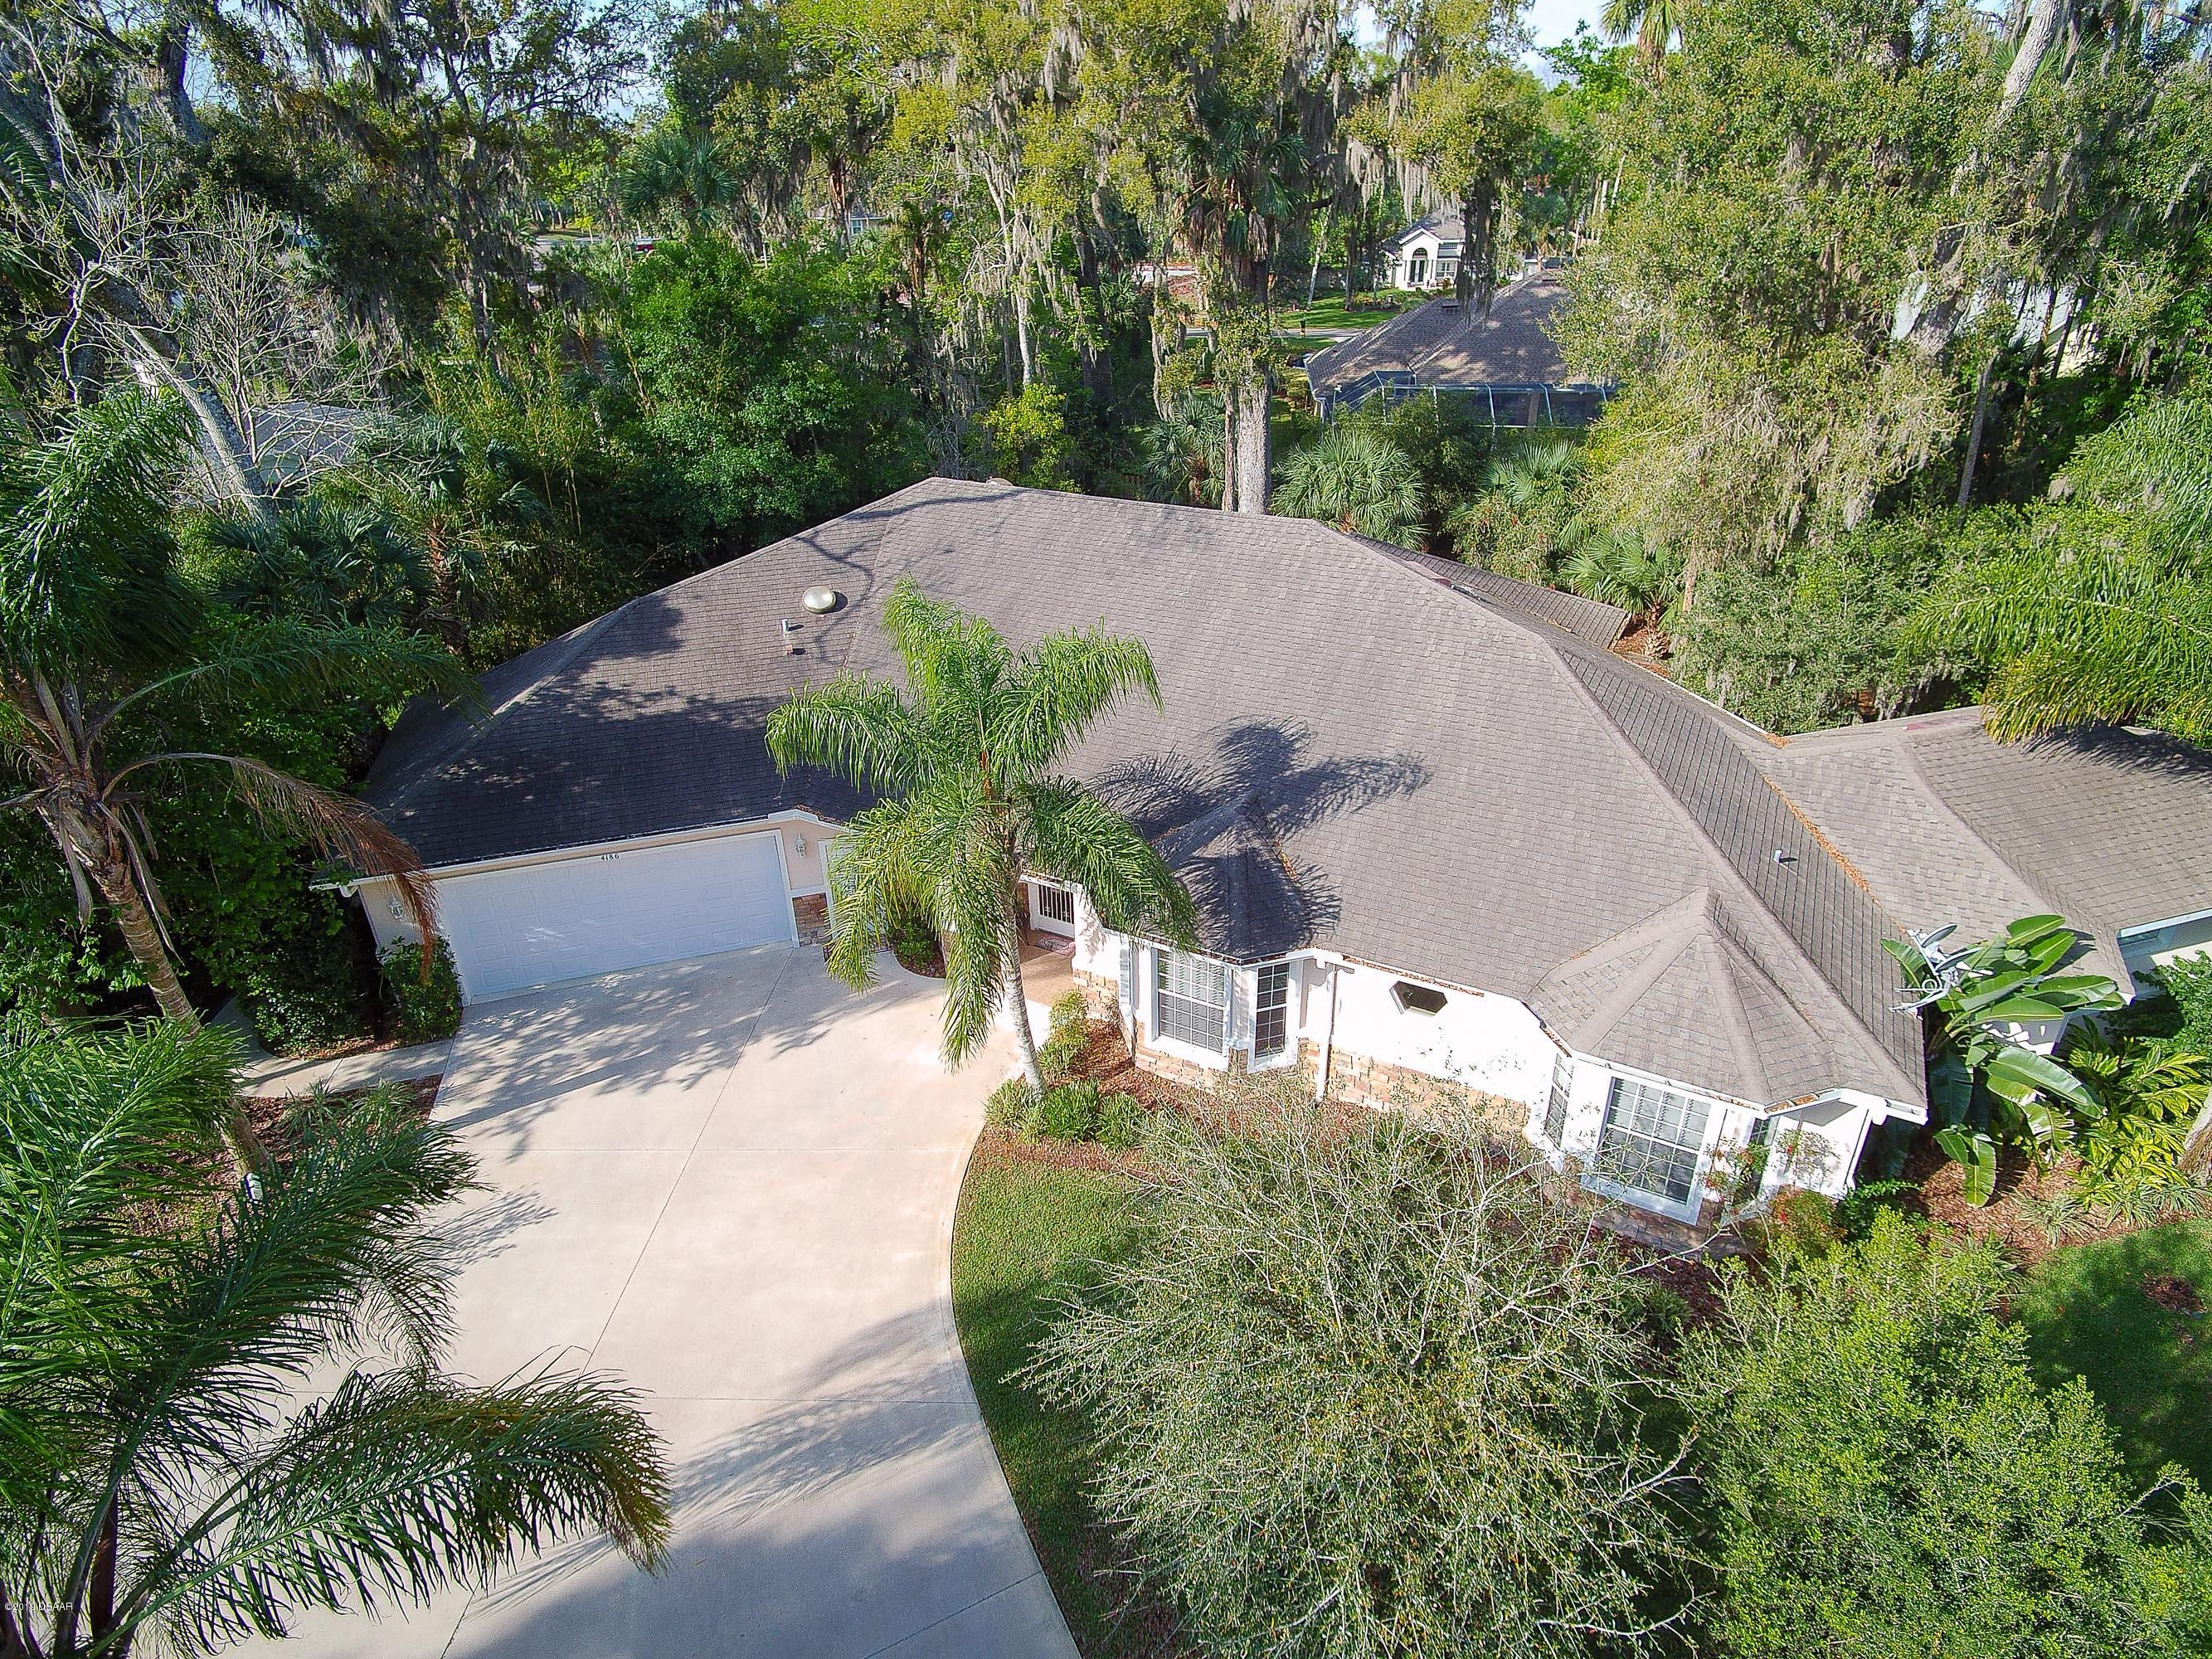 4186 Sanora Lane 32174 - One of Ormond Beach Homes for Sale